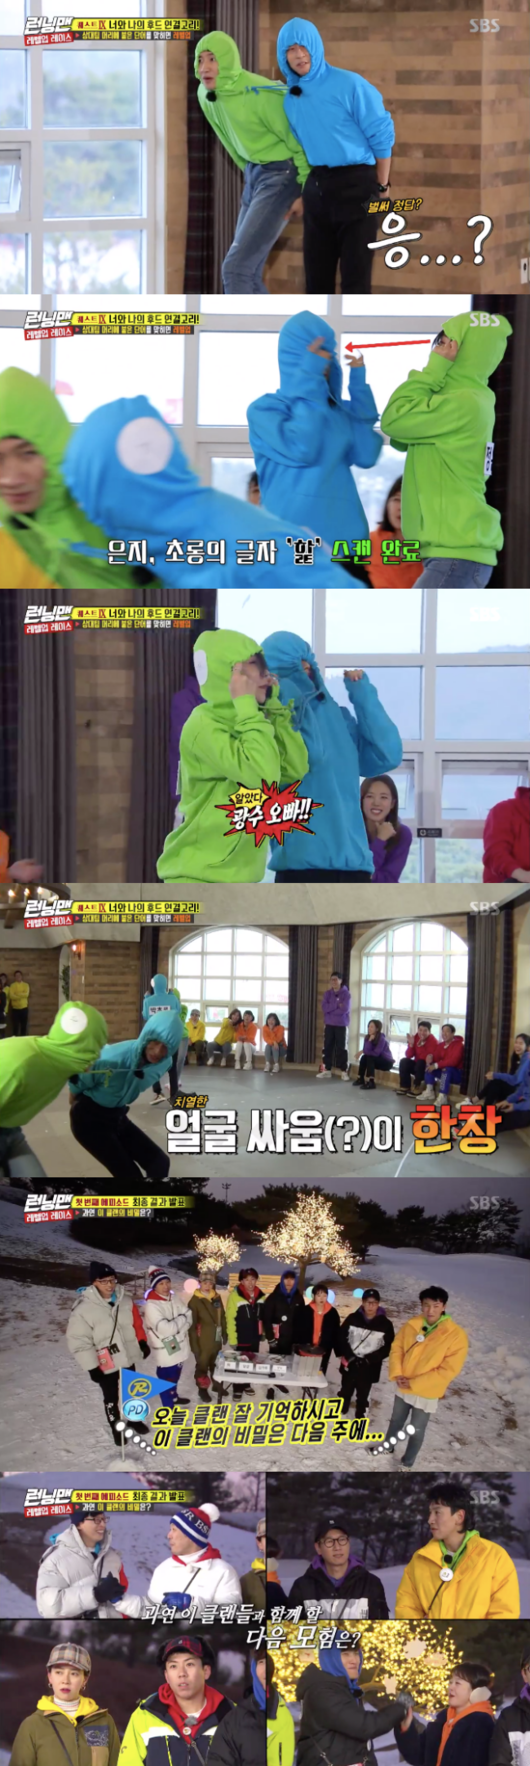 <p> 'Running Man' Yoo Jae Suk and Lee Kwang-soo, nevertheless the best for couples.</p><p>New Year the first 'Running Man'in a perfect honey application to self-love Yoo Jae Suk and Lee Kwang-soo. Birds like to play, or The Game in a big laugh for two people. 'Running Man' Official Kemi, the fairy of the New Year, also continued.</p><p>The last 6 days afternoon broadcast SBS TV Running Manin the New Year the first race as a RPG The Game proceeded. 'Running Man' members 'powers, until' The Game through Level-Up Project. Groups from couples, and individuals before a variety of The Game is no more fun.</p><p>Whats more New Year in Kemi luminous Yoo Jae Suk and Lee Kwang-soo was. Lee Kwang-soo is the analysis with the 'Running Man' New Year the first penalty as the opening appeared in. Black tights outfit and the pig expression and Lee Kwang-soos look in the members burst out laughing, and play with each other the more fun. Get teased Lee Kwang-soo is the 'Running Man'of the staple material more interesting.</p><p>The Game proceed while Lee Kwang-soo and Yoo Jae Suk of cable also once again shone. Yoo Jae Suk and Lee Kwang-soo is on each other while 'dirty play'to laugh more. For example in laughter giving the perfect Kemi.</p><p>By other members and with a portion that couples with lace in the facing becomes Yoo Jae Suk and Lee Kwang-soo was. The two hooded T-shirt of the strap to stay face-to-face with each other after the head of the paste with the letters right at all. The Game starts when two people are fierce fighting, instead of carefully sideways head-butt and stood.</p><p>Yoo Jae Suk and Lee Kwang-soo is with me in not and head to the right and carefully walk around, but from laughter. Fierce battle in the spiral is not of the gambling and other. The more carefully this for the two example functions perfectly on luminous Kemi. Ahead level relegation member is defined even when two people left, laughter.</p><p>'Running Man'in The Deuce such a case the image showing, or on the same team, it was Yoo Jae Suk and Lee Kwang-soo. This year, the 'Running Man'responsible Kemi maker of active. [Photo]SBS broadcast screen capture</p><p>SBS broadcast screen capture</p>